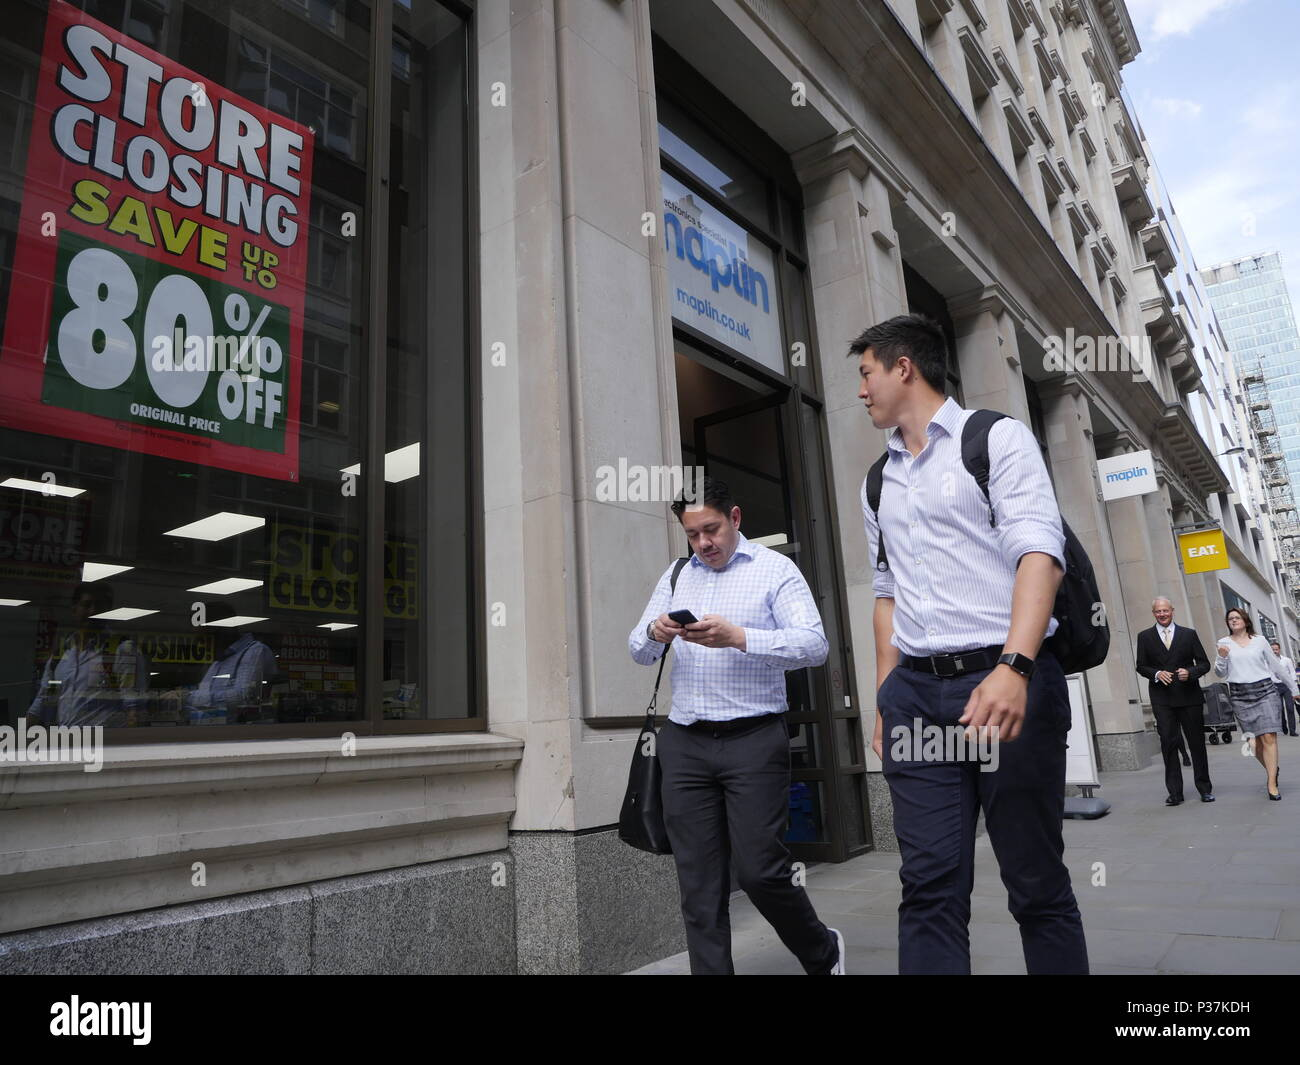 Maplins closing down, store closure sale, London Stock Photo